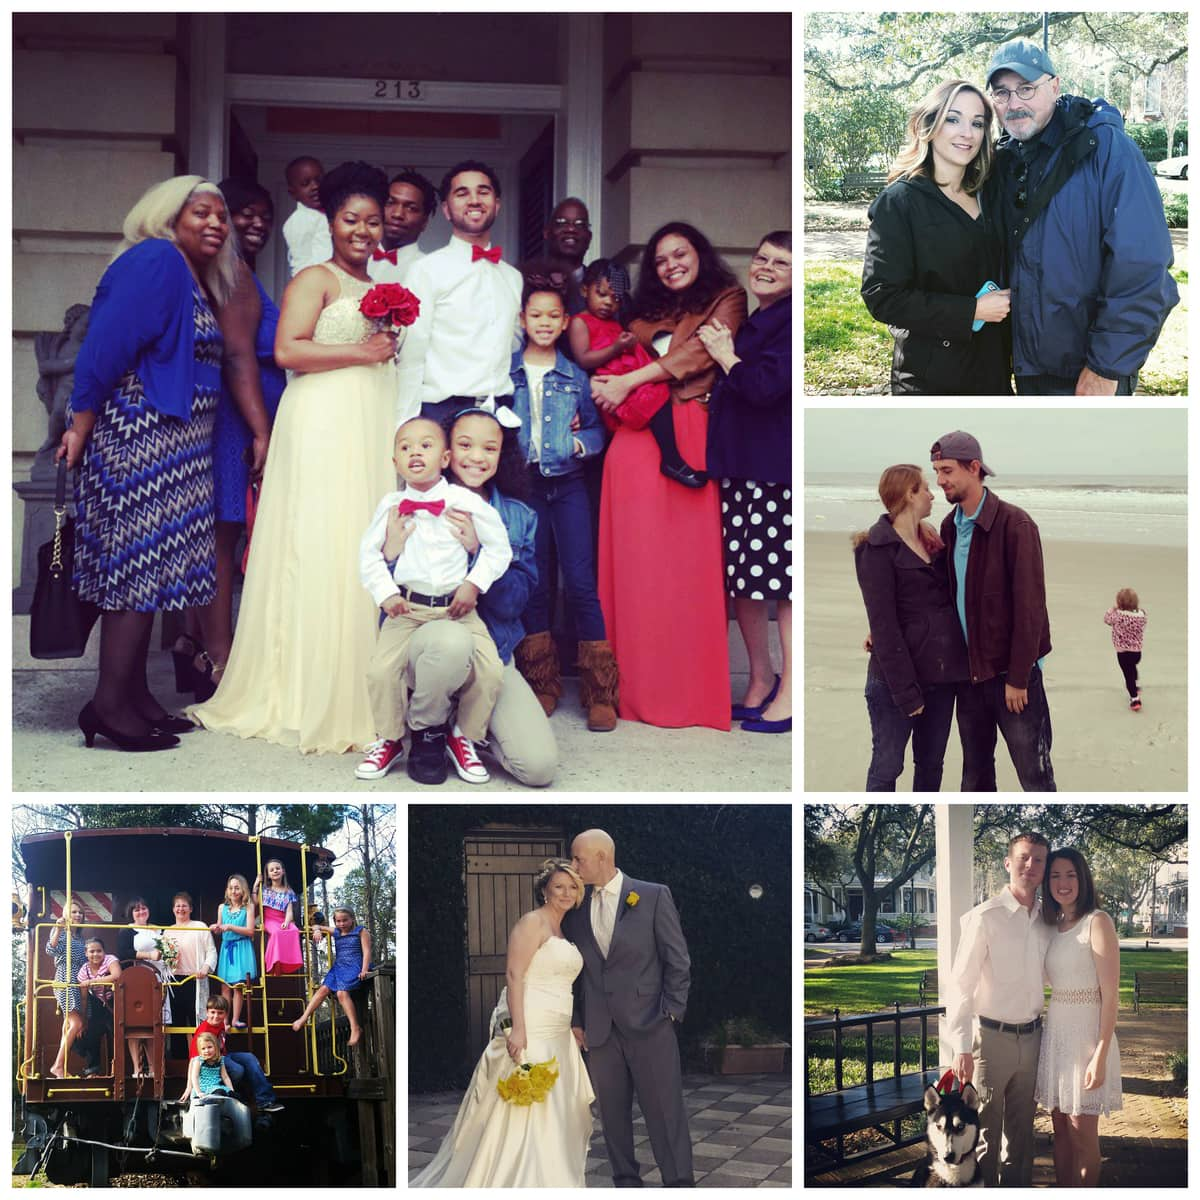 6 Weddings in 6 Days: All Love is Beautiful